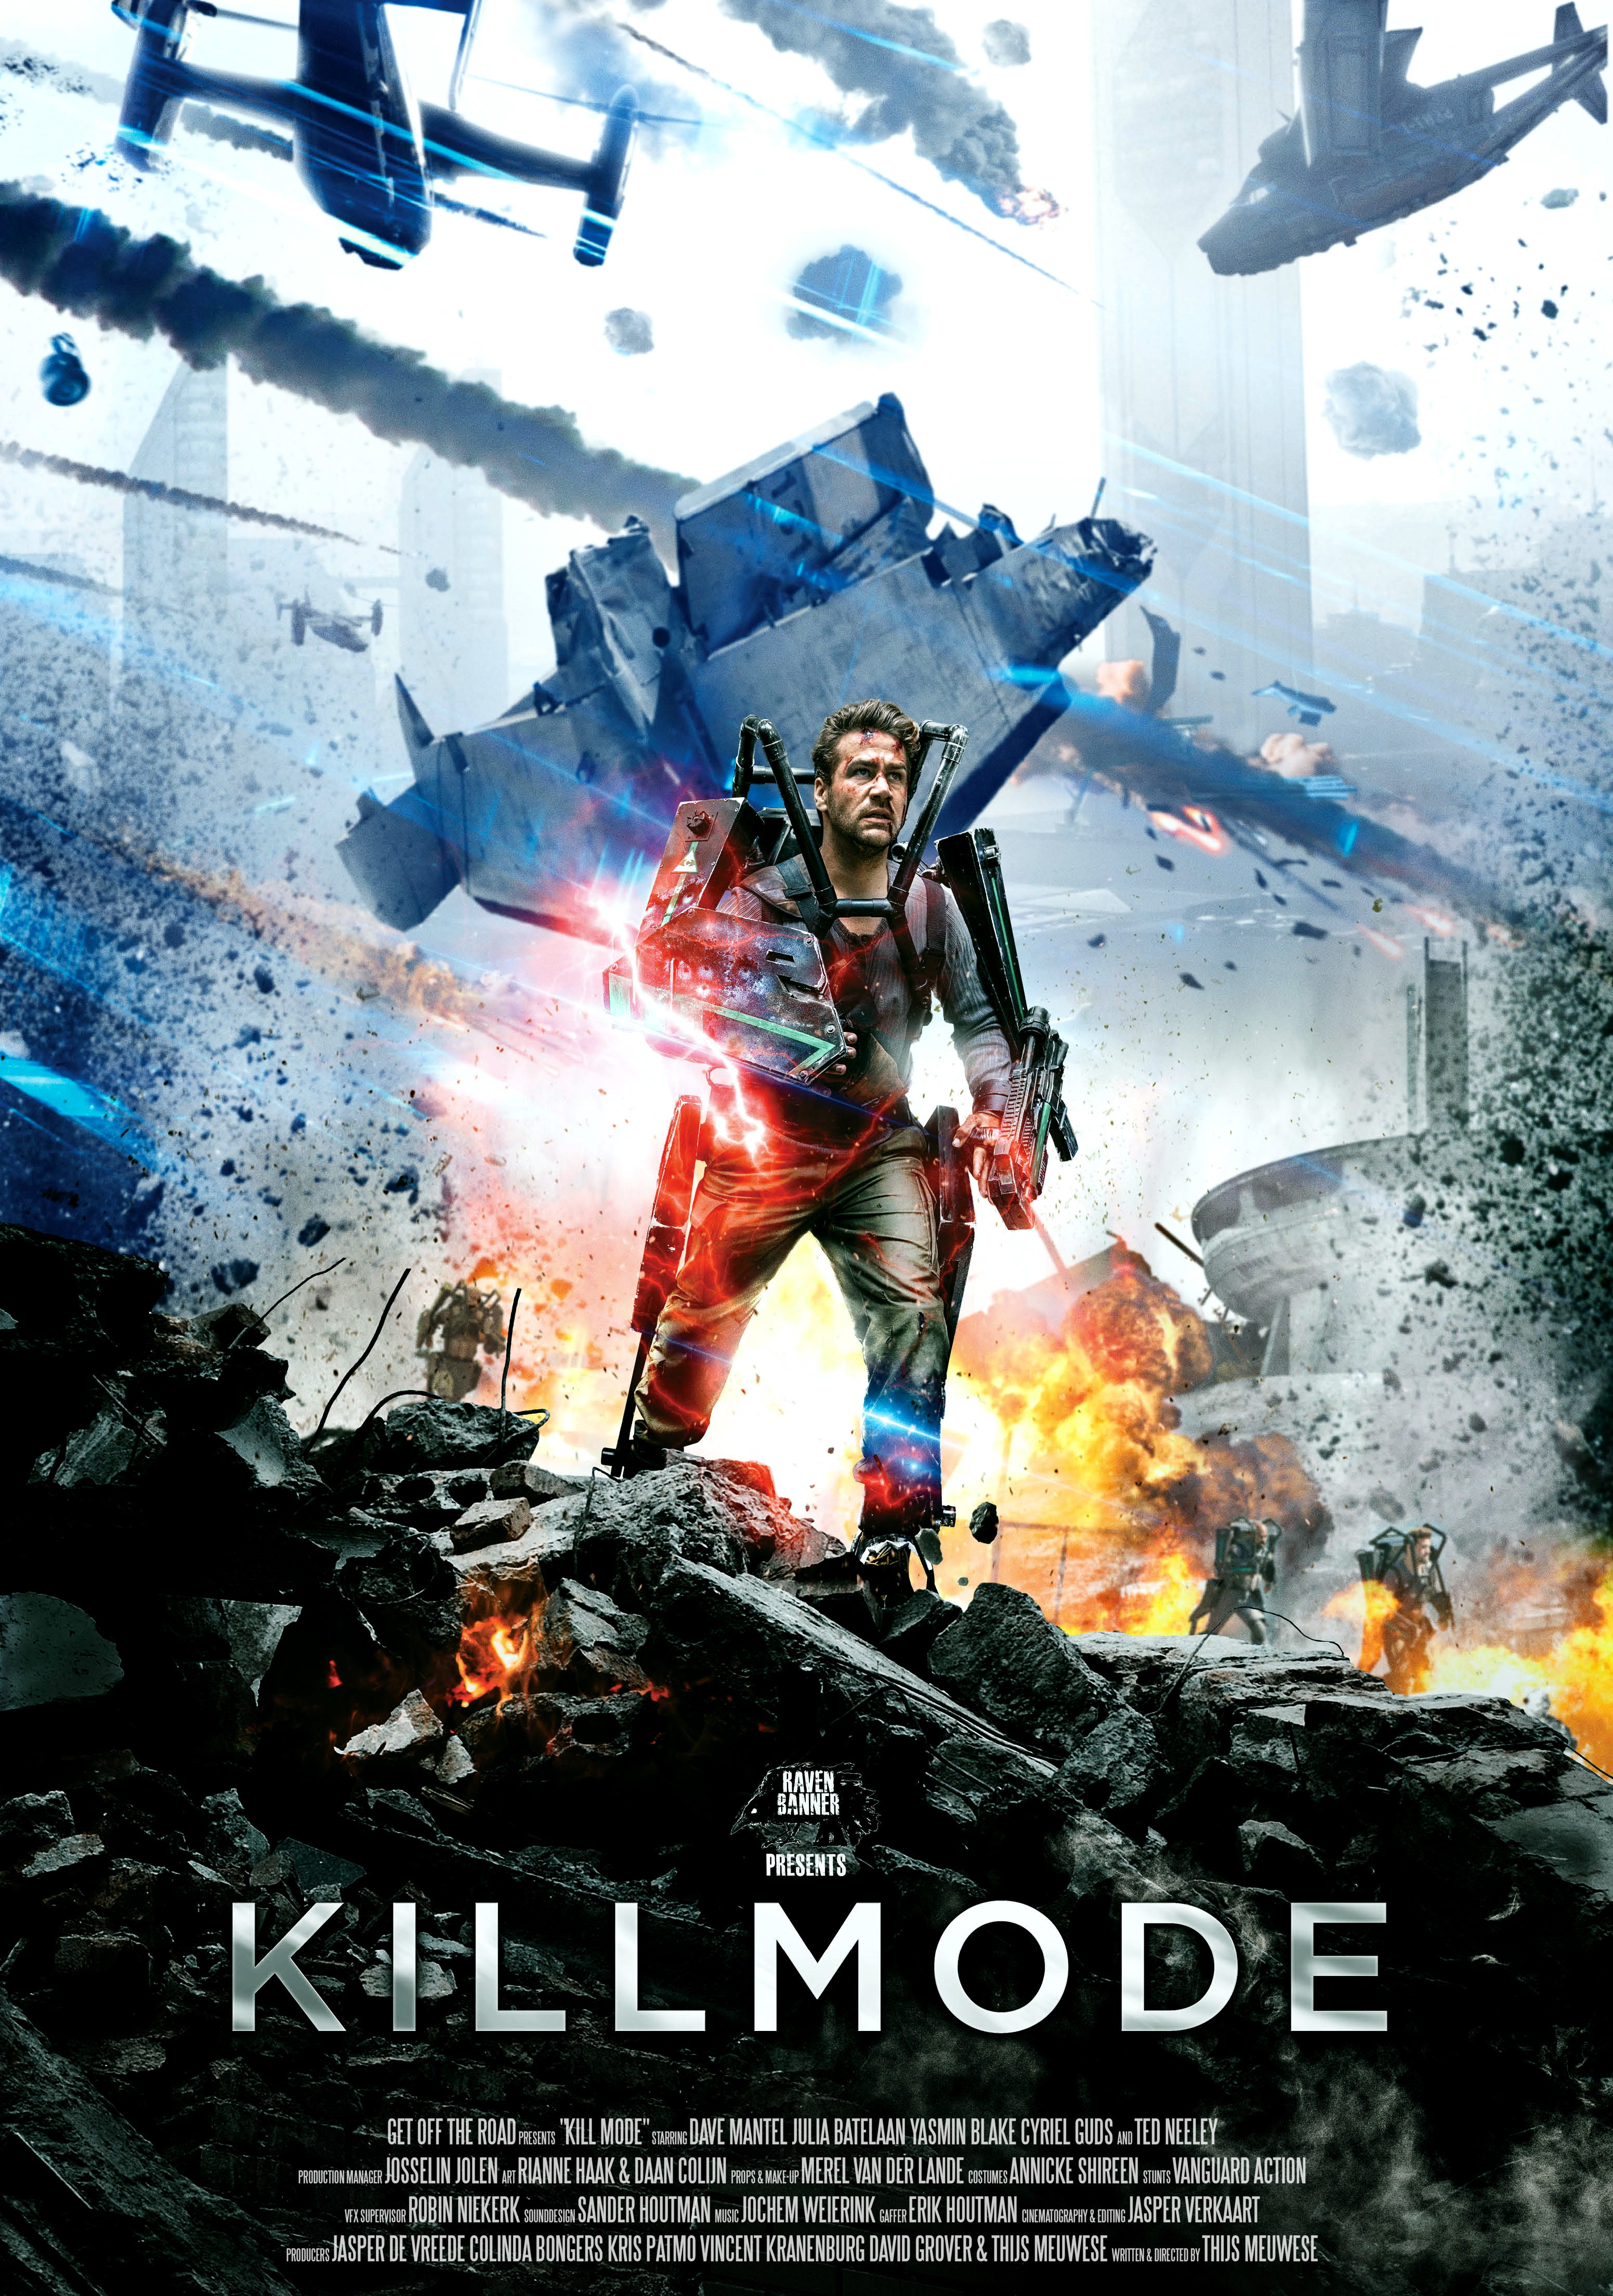 KILL MODE, Action/Science Fiction (completed, screening AFM 2019)